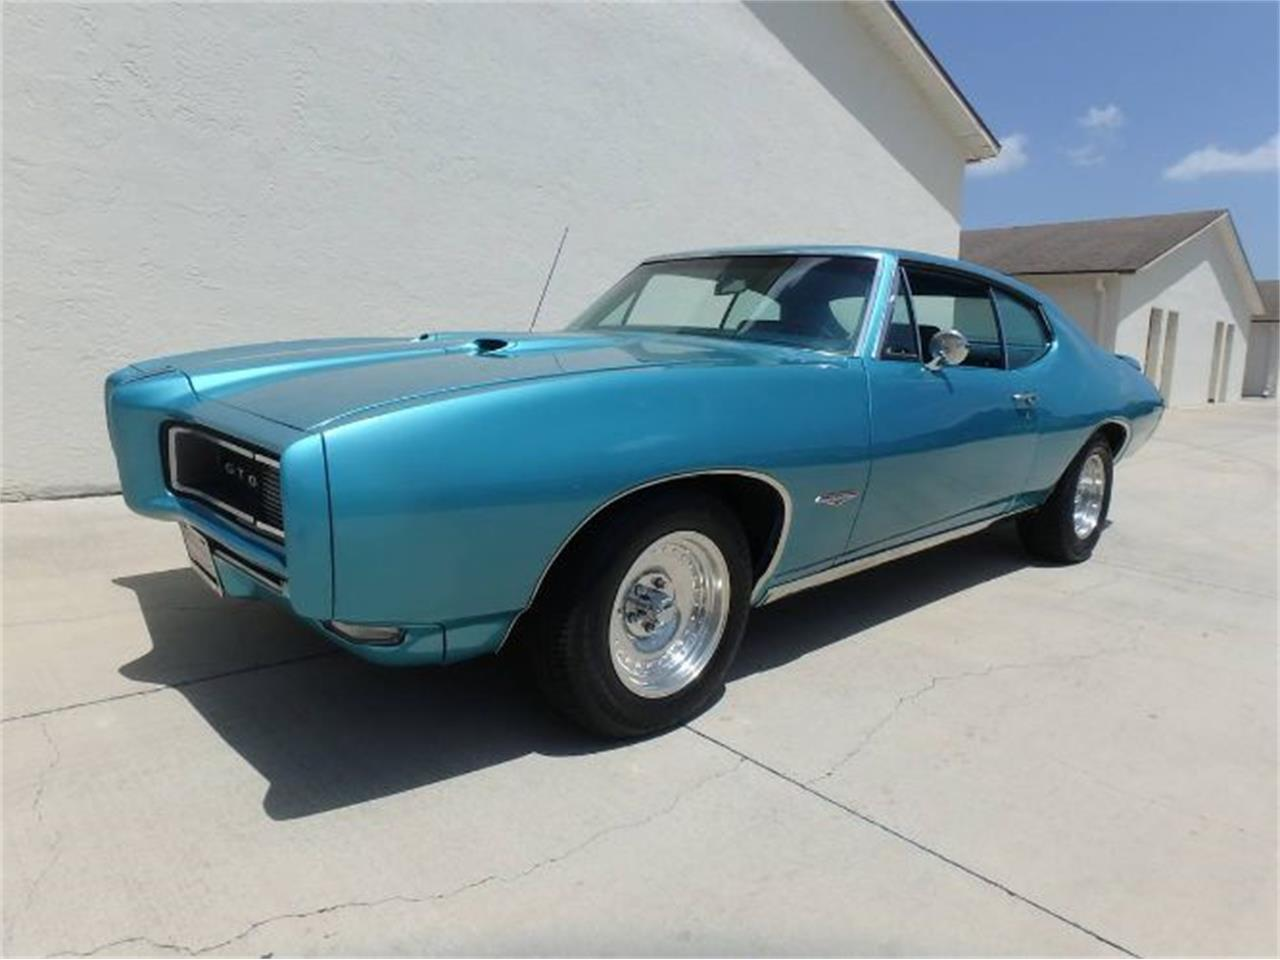 Large Picture of 1968 GTO located in Cadillac Michigan - $28,895.00 Offered by Classic Car Deals - QZRL